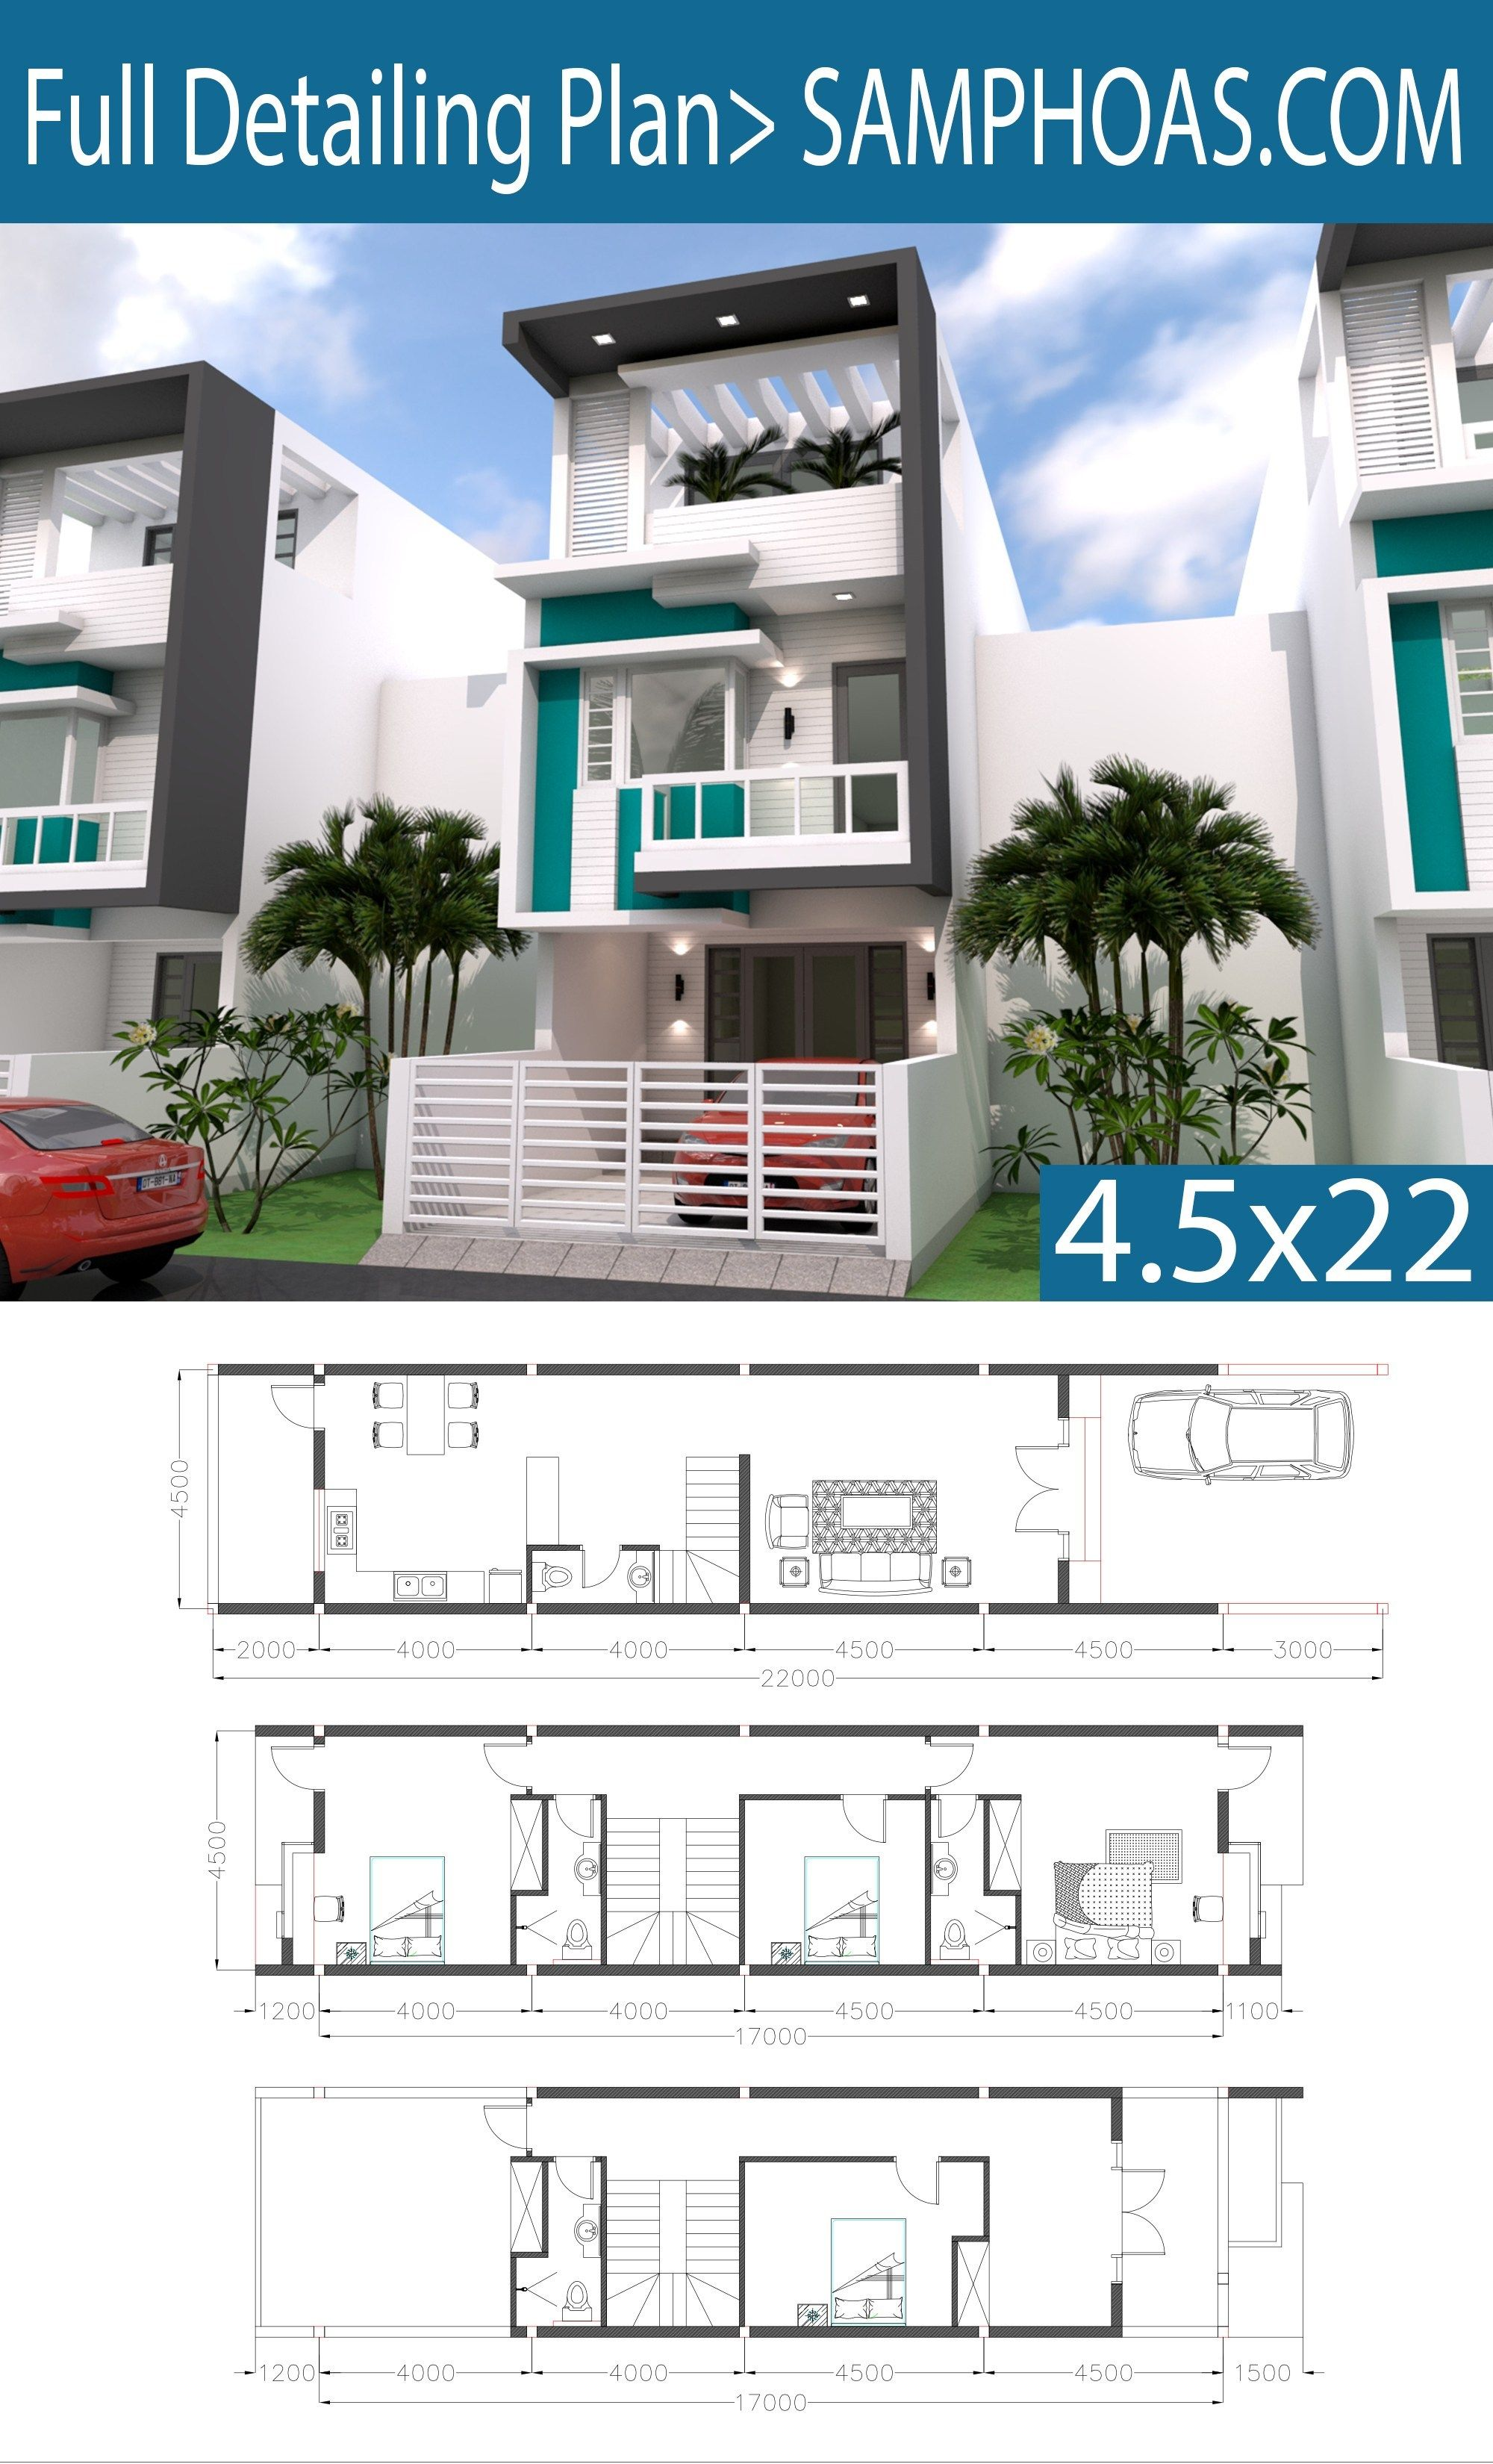 Sketchup 3 Story Narrow Home Plan 4.5x20m | Narrow house ... on 3-story small tower plans, contemporary narrow house plans, long narrow floor plans, 3-story tiny house plans, victorian narrow house plans, narrow urban row house plans, 3-story house plans urban, 3-story beach house designs, long and narrow bathroom plans, 3-story house floor plans, custom narrow house plans, 3-story house with elevator, narrow lot house plans, 3-story house with pool, long narrow house plans, craftsman narrow house plans, 3-story beach house plans, luxury 3-story house plans, narrow duplex house plans, 3-story traditional house plans,